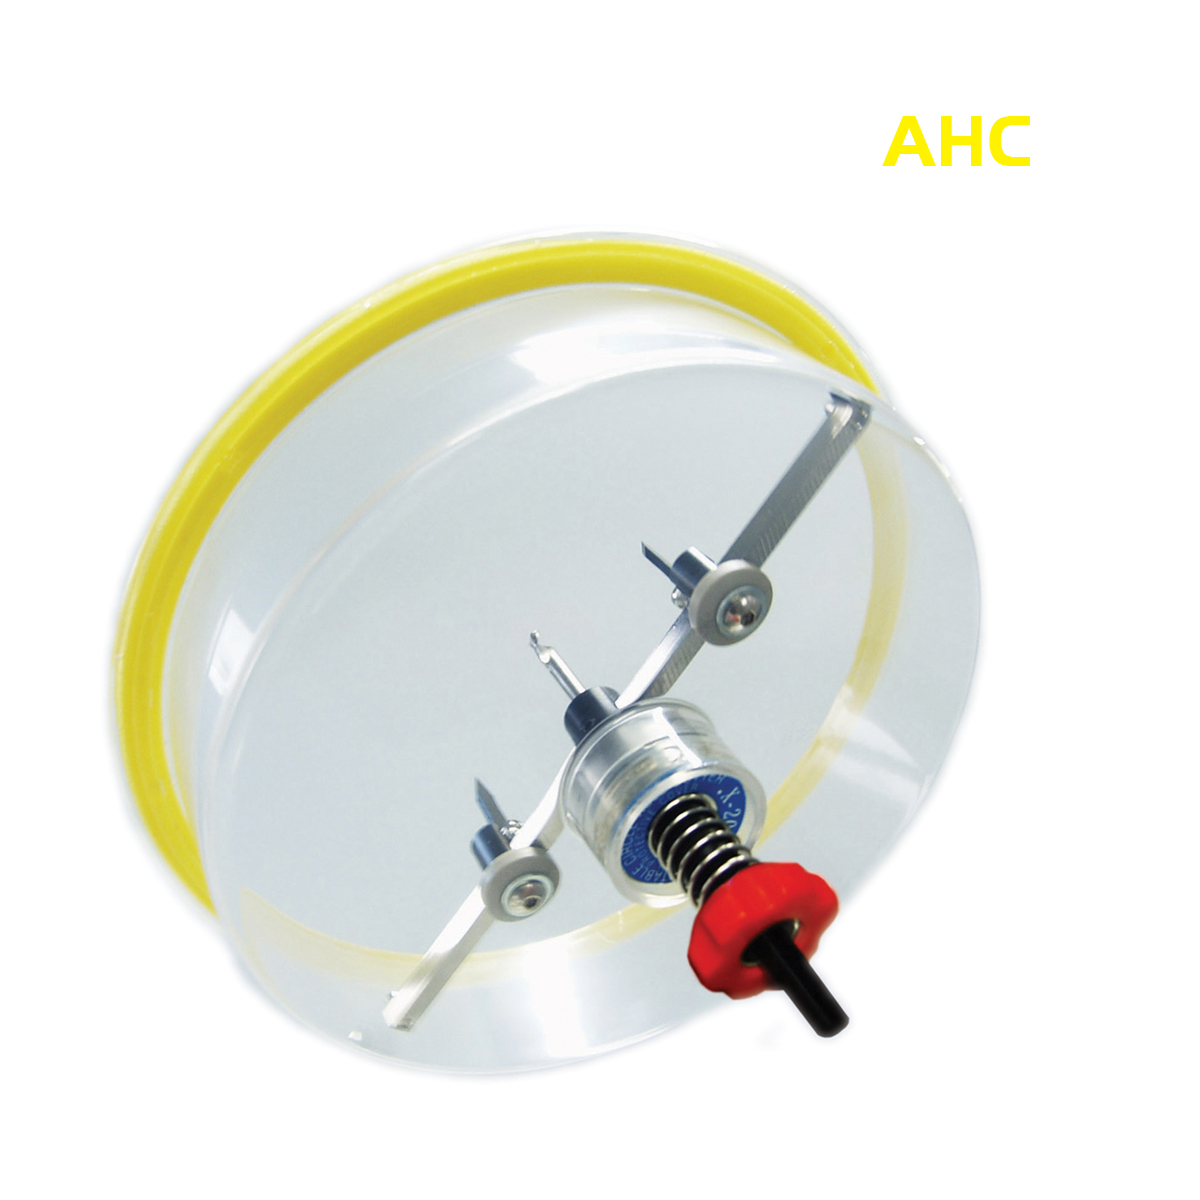 Adjustable Hole Cutter (40mm - 200mm)